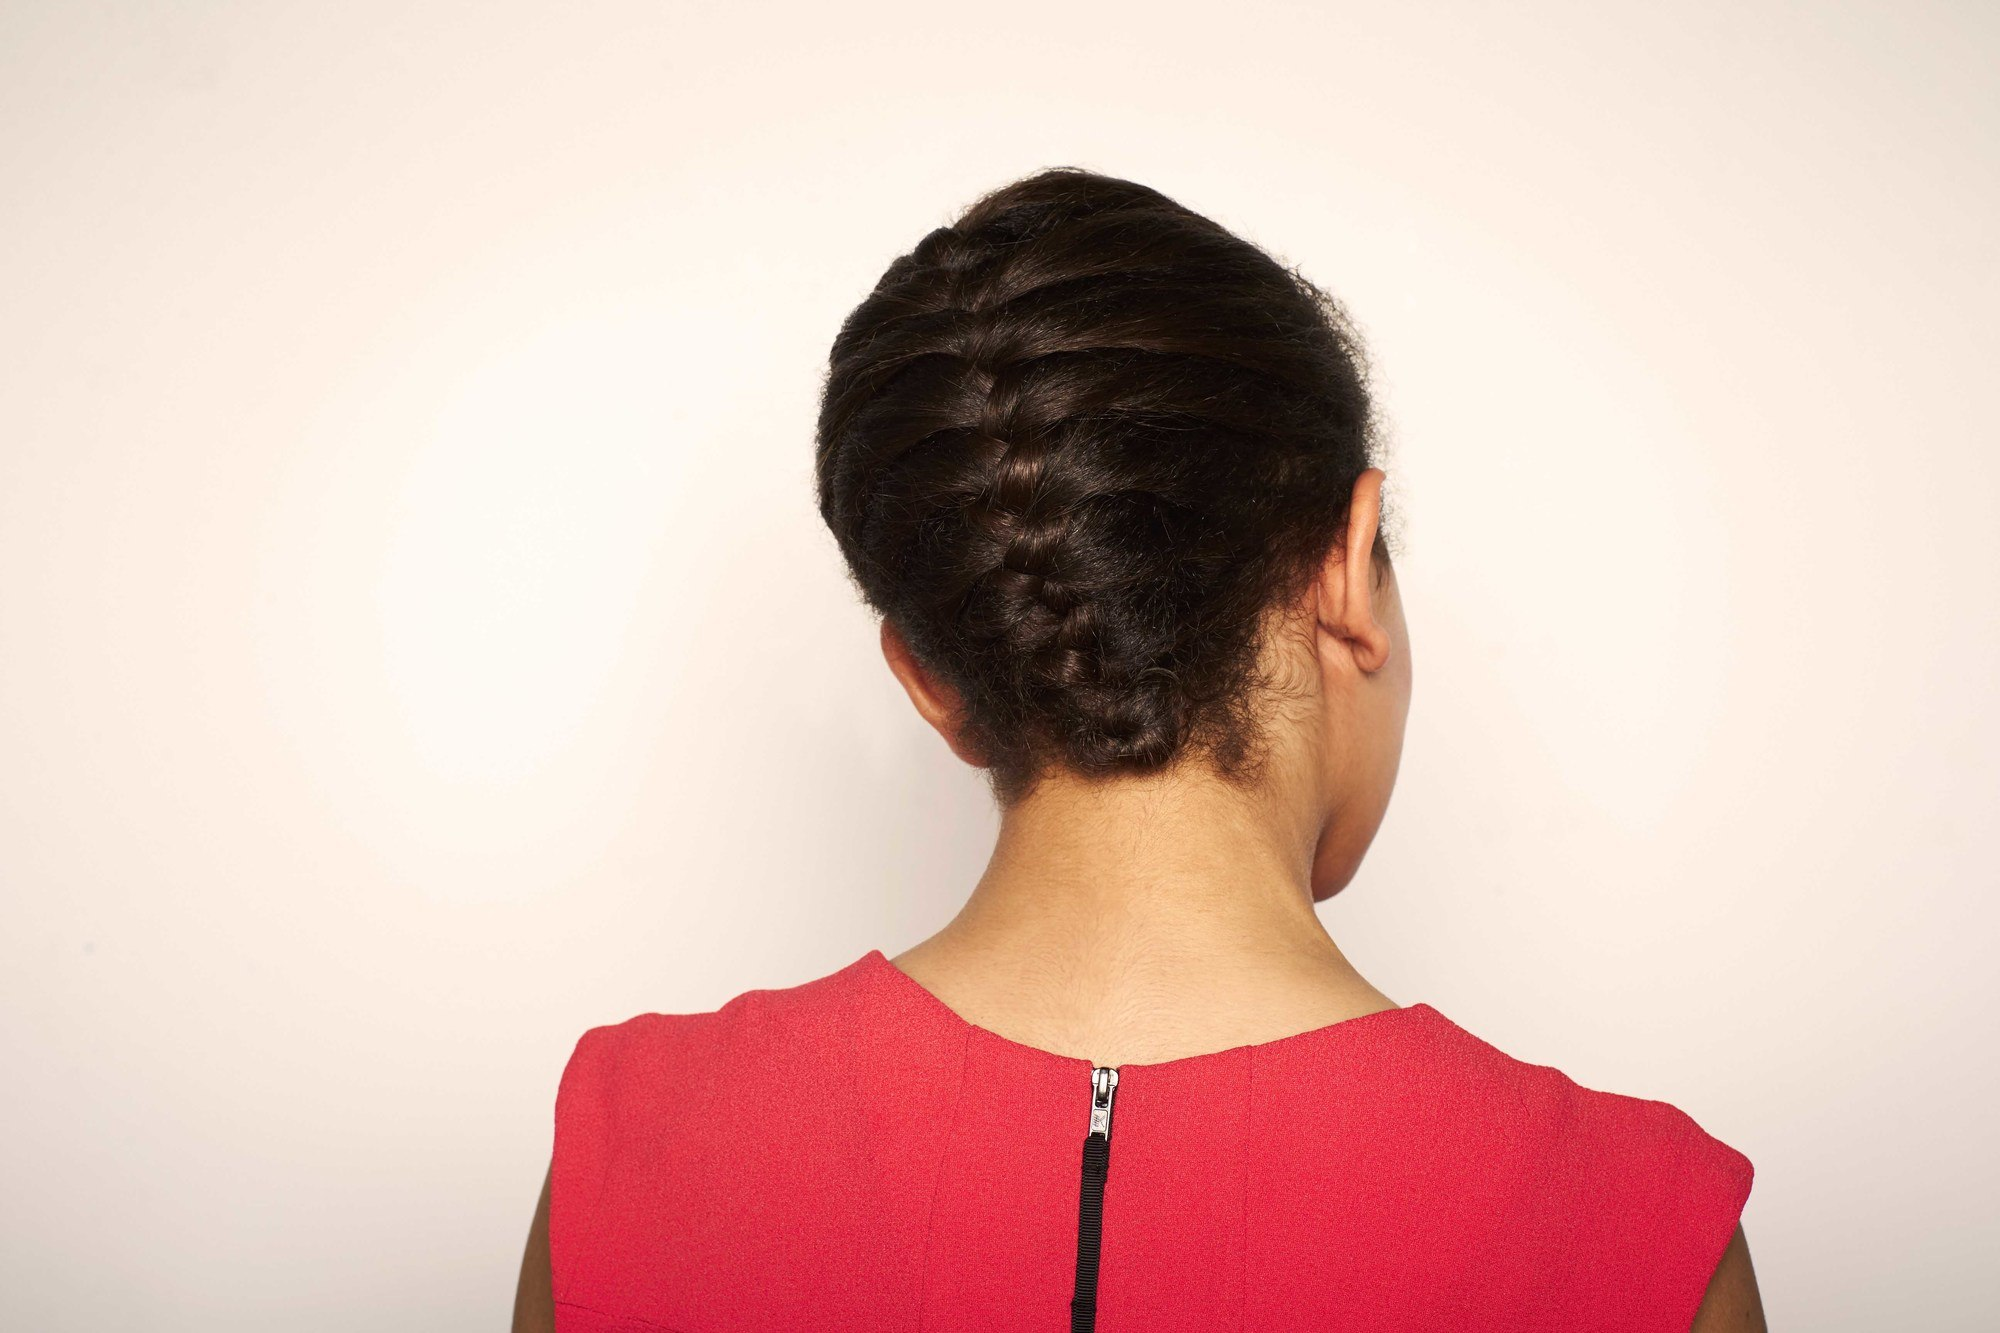 15 Transitioning Hairstyles To Try For Natural Hair